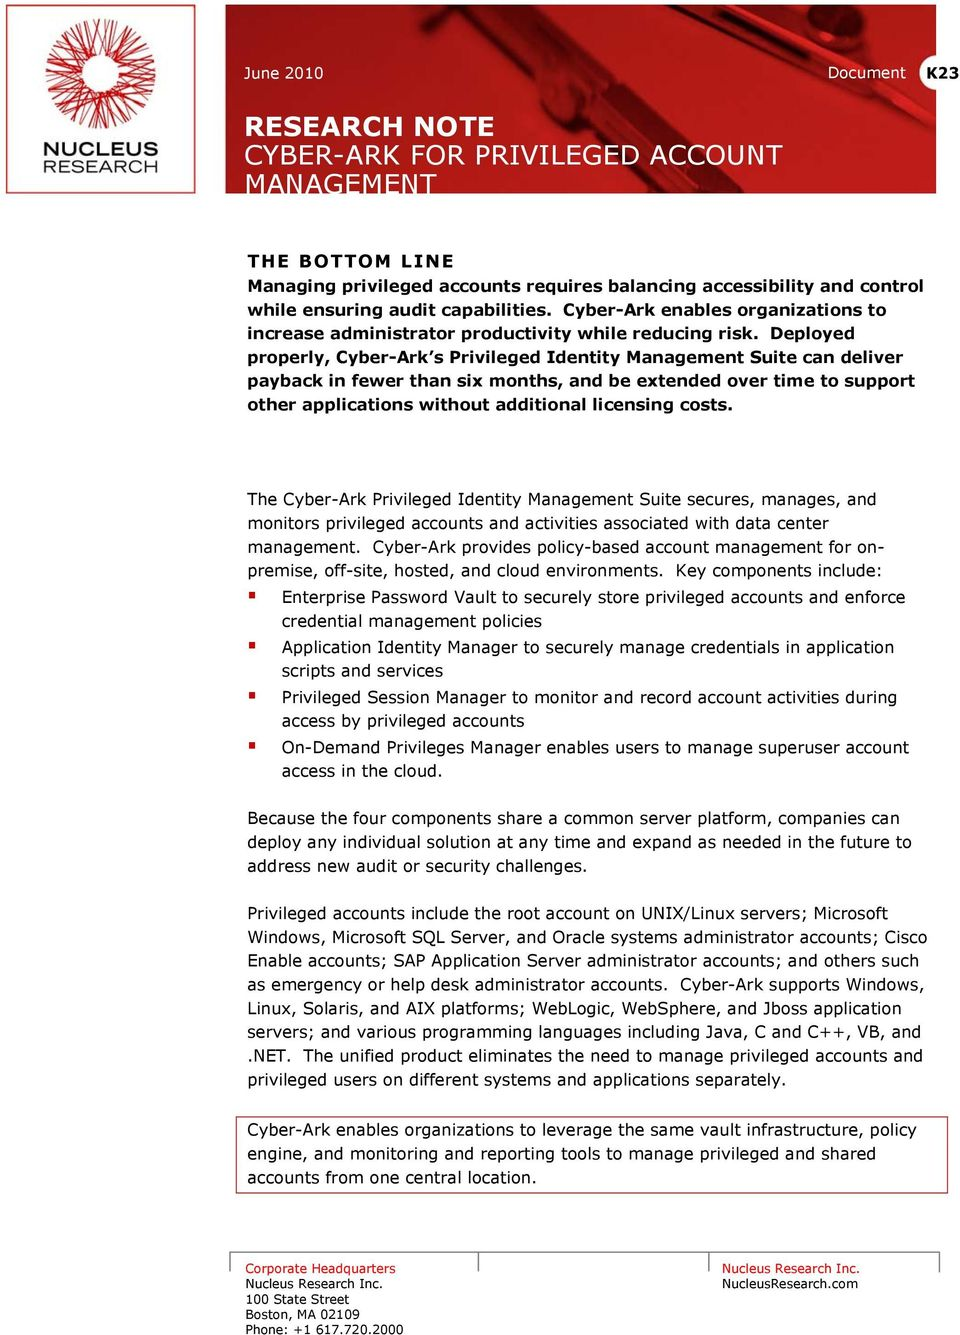 RESEARCH NOTE CYBER-ARK FOR PRIVILEGED ACCOUNT MANAGEMENT - PDF